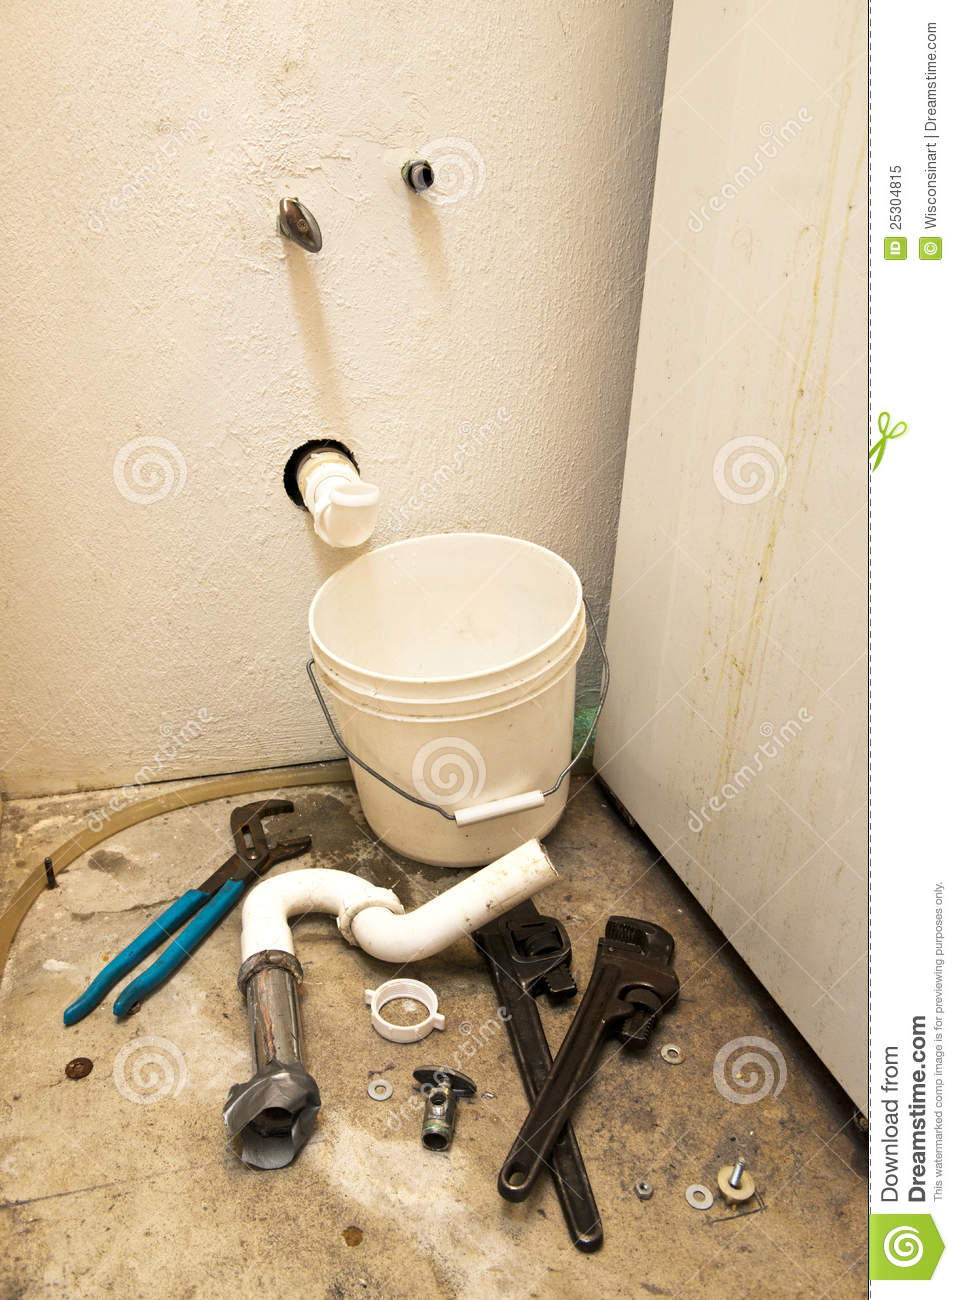 Leak pipe royalty free stock image for Water pipes for home